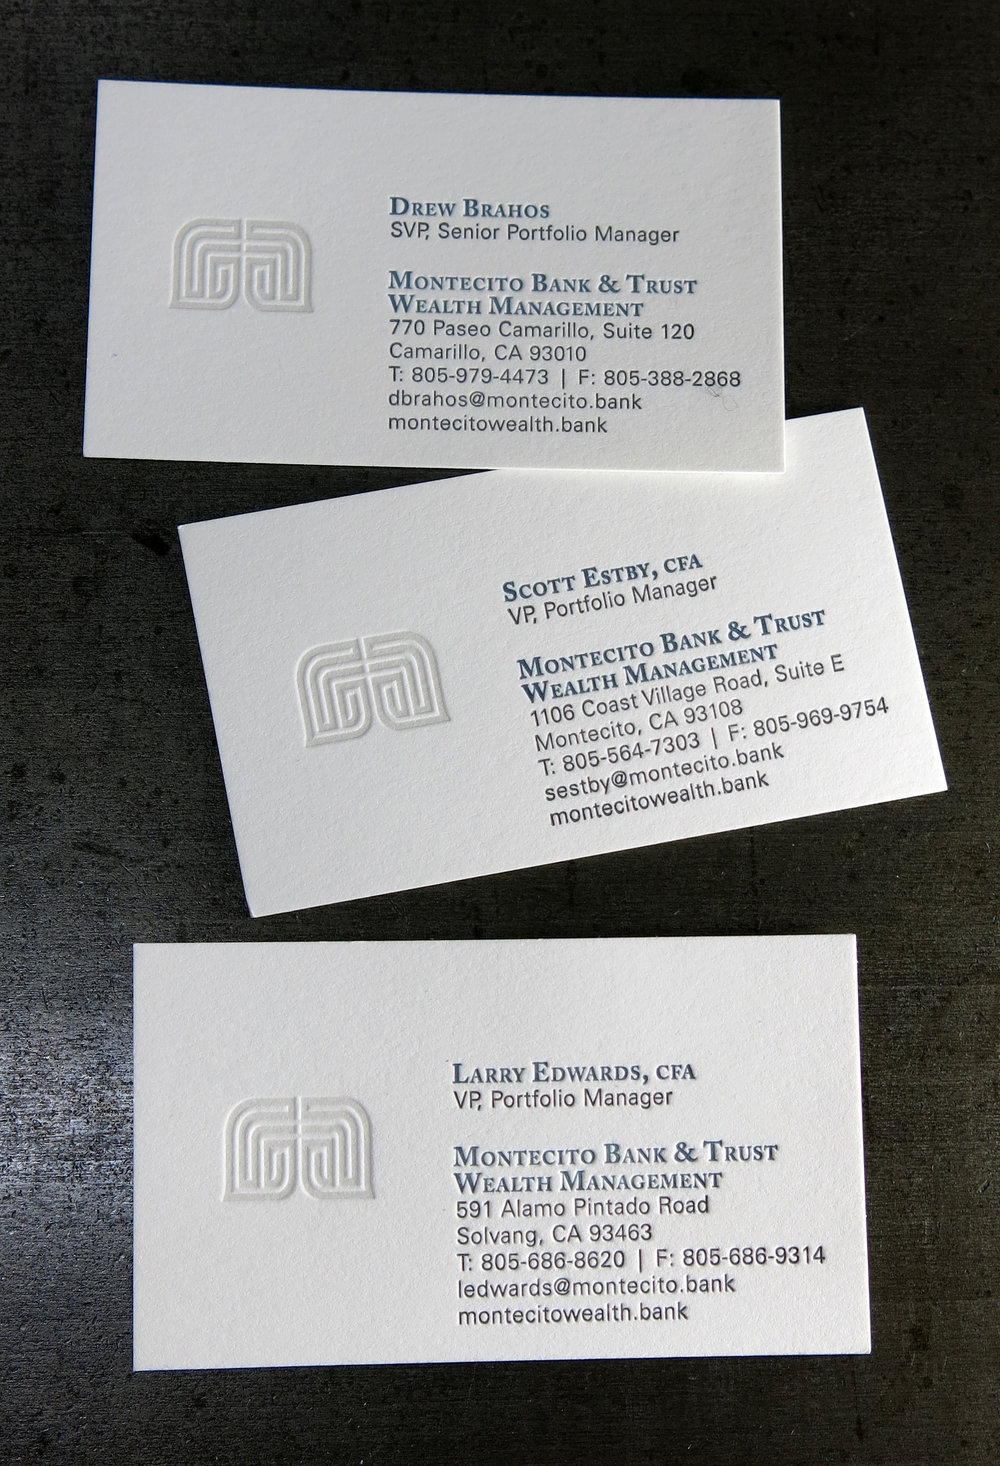 Stationery business cards lumino press montecito bank img2162g colourmoves